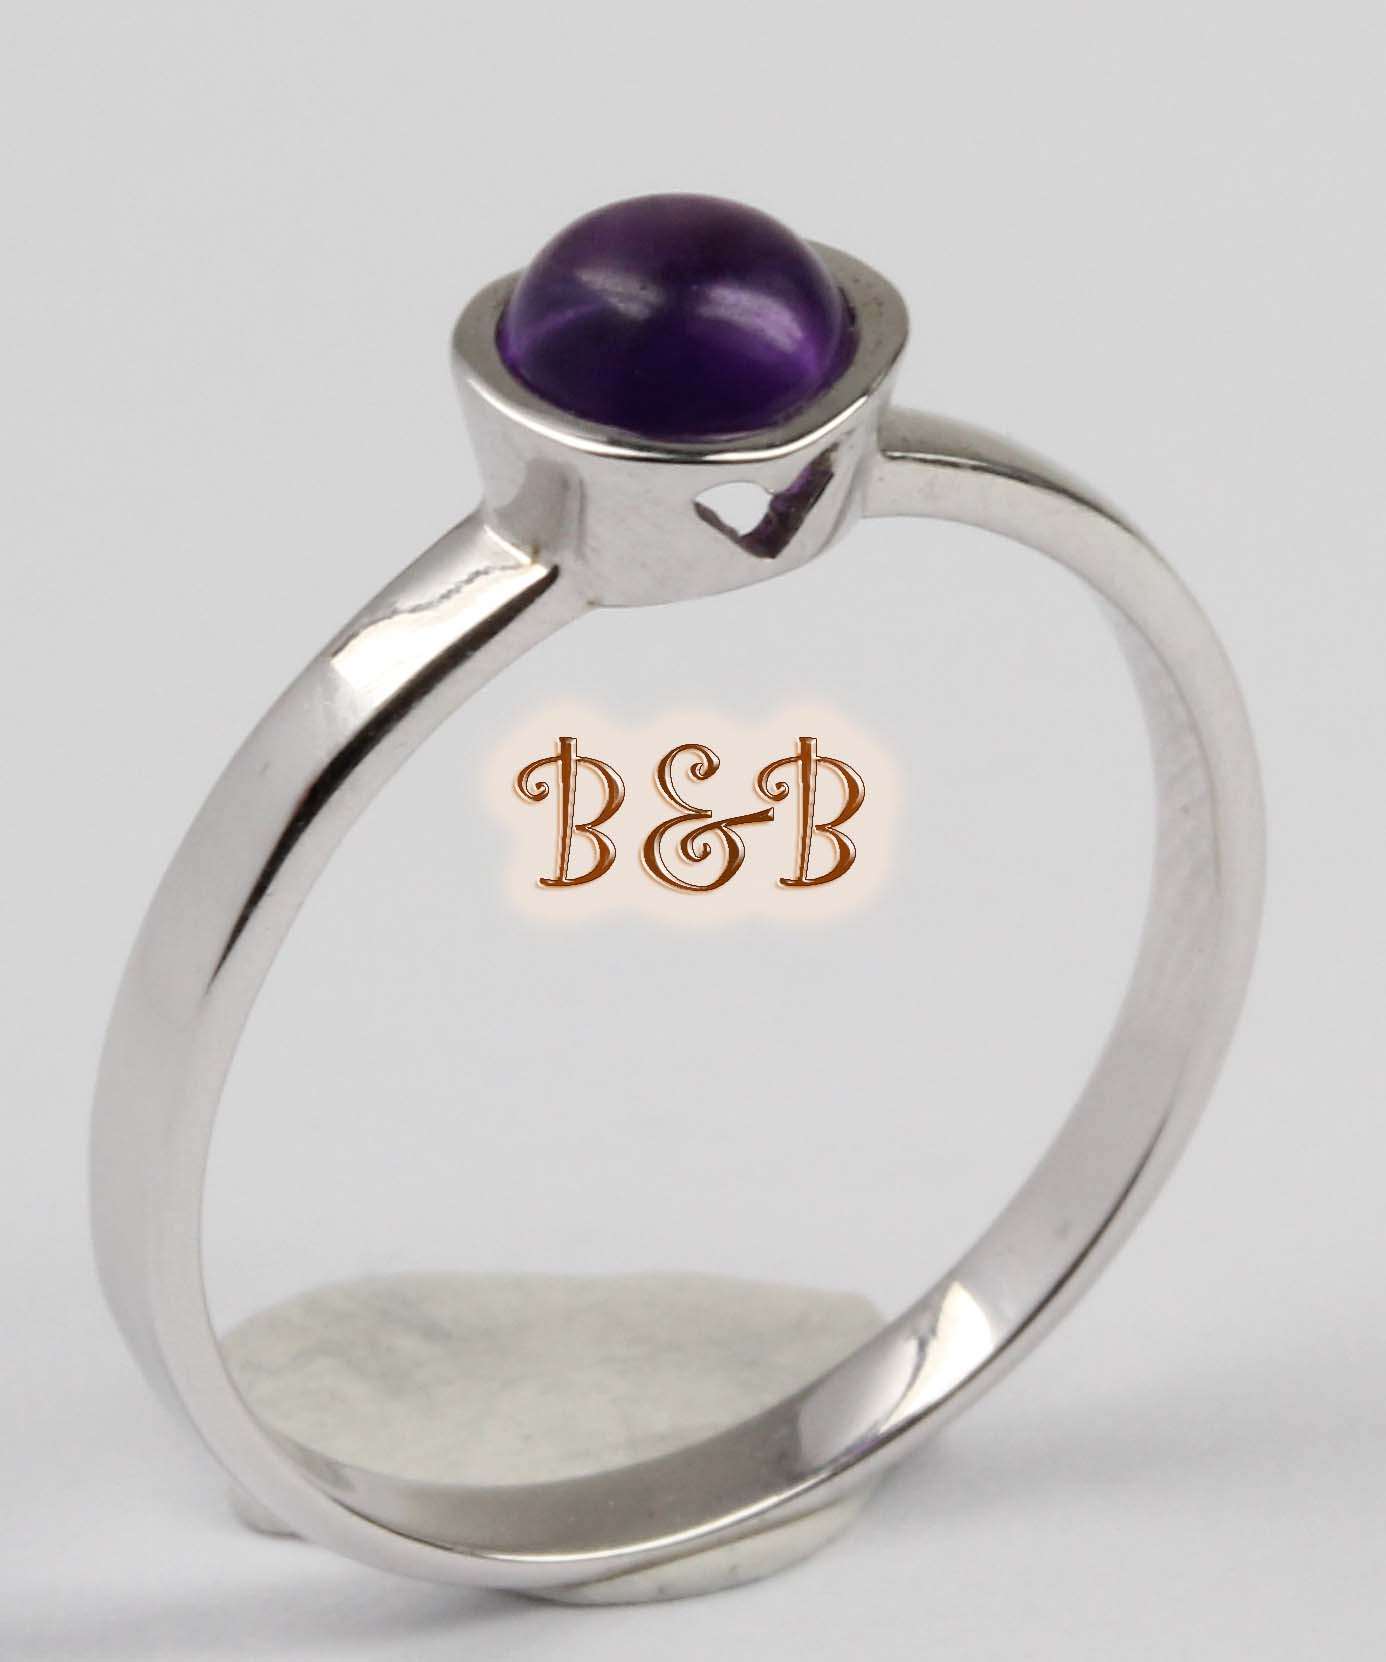 Silver ring_bb9.9